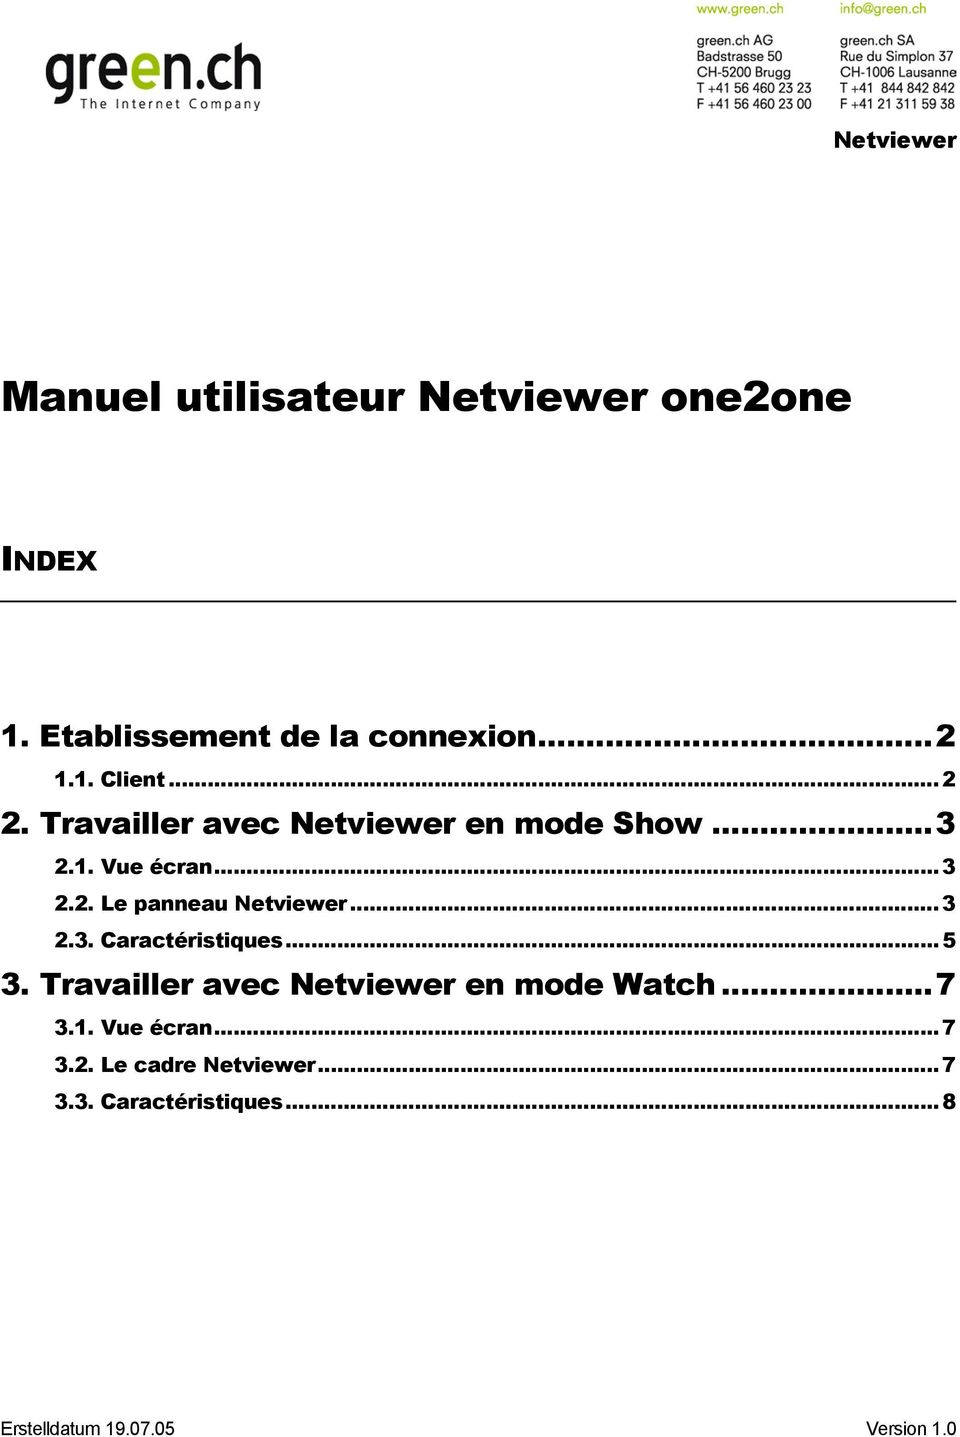 NETVIEWER ONE2ONE TÉLÉCHARGER